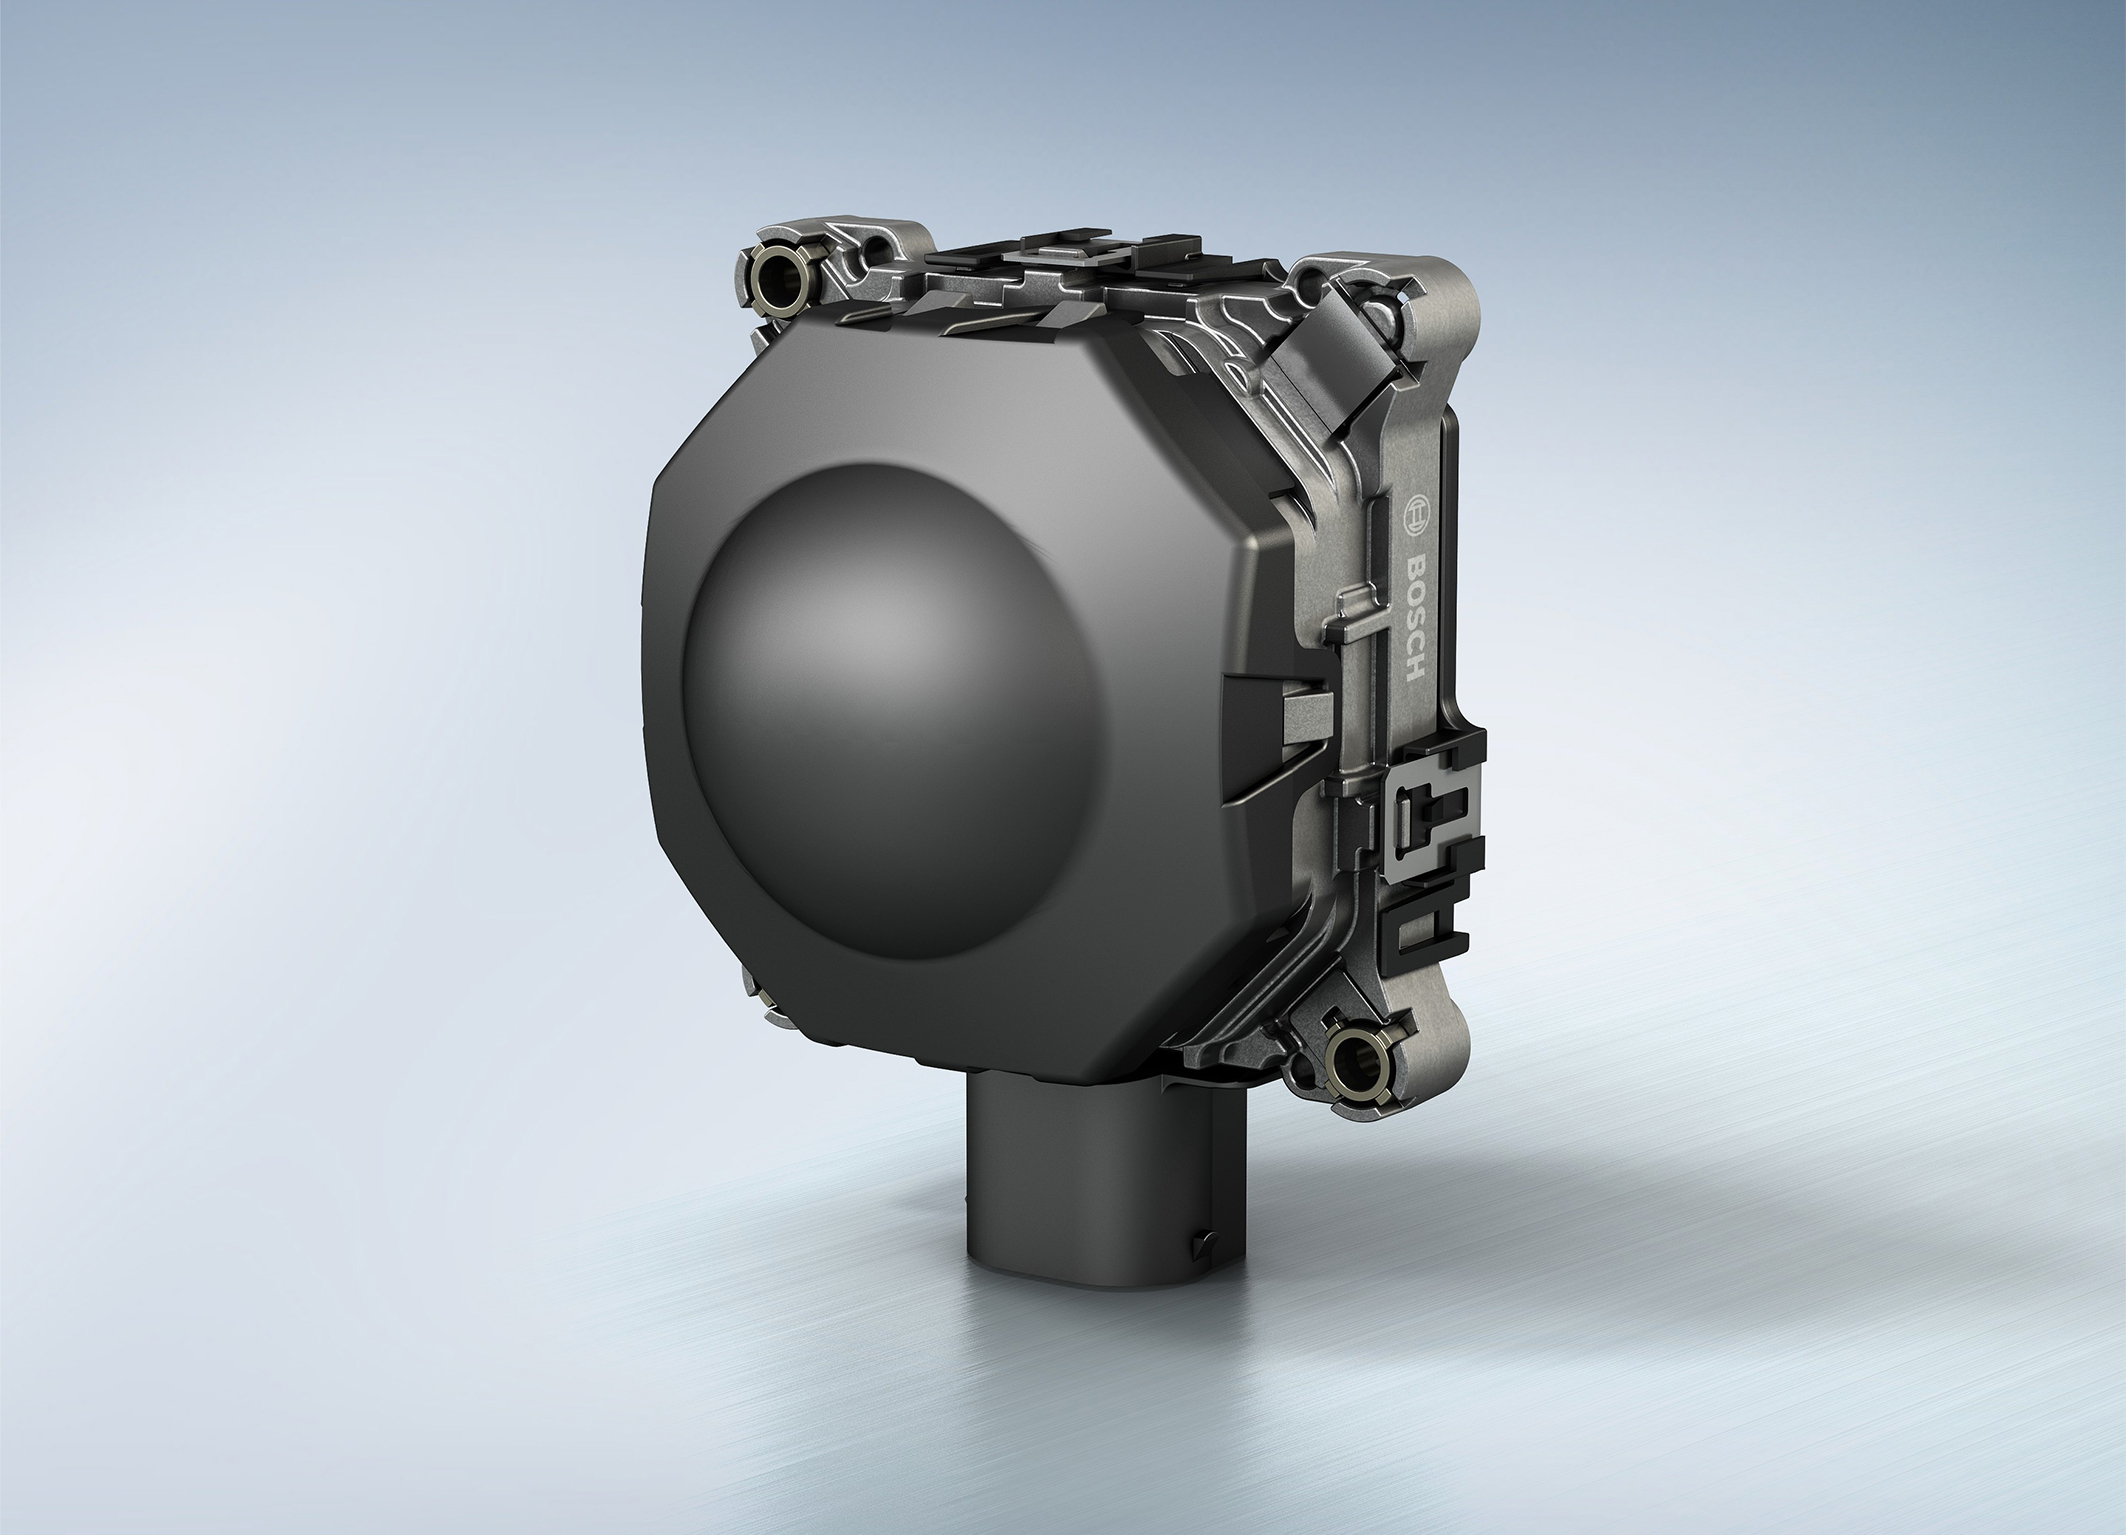 New Bosch radar sensor for assistance systems